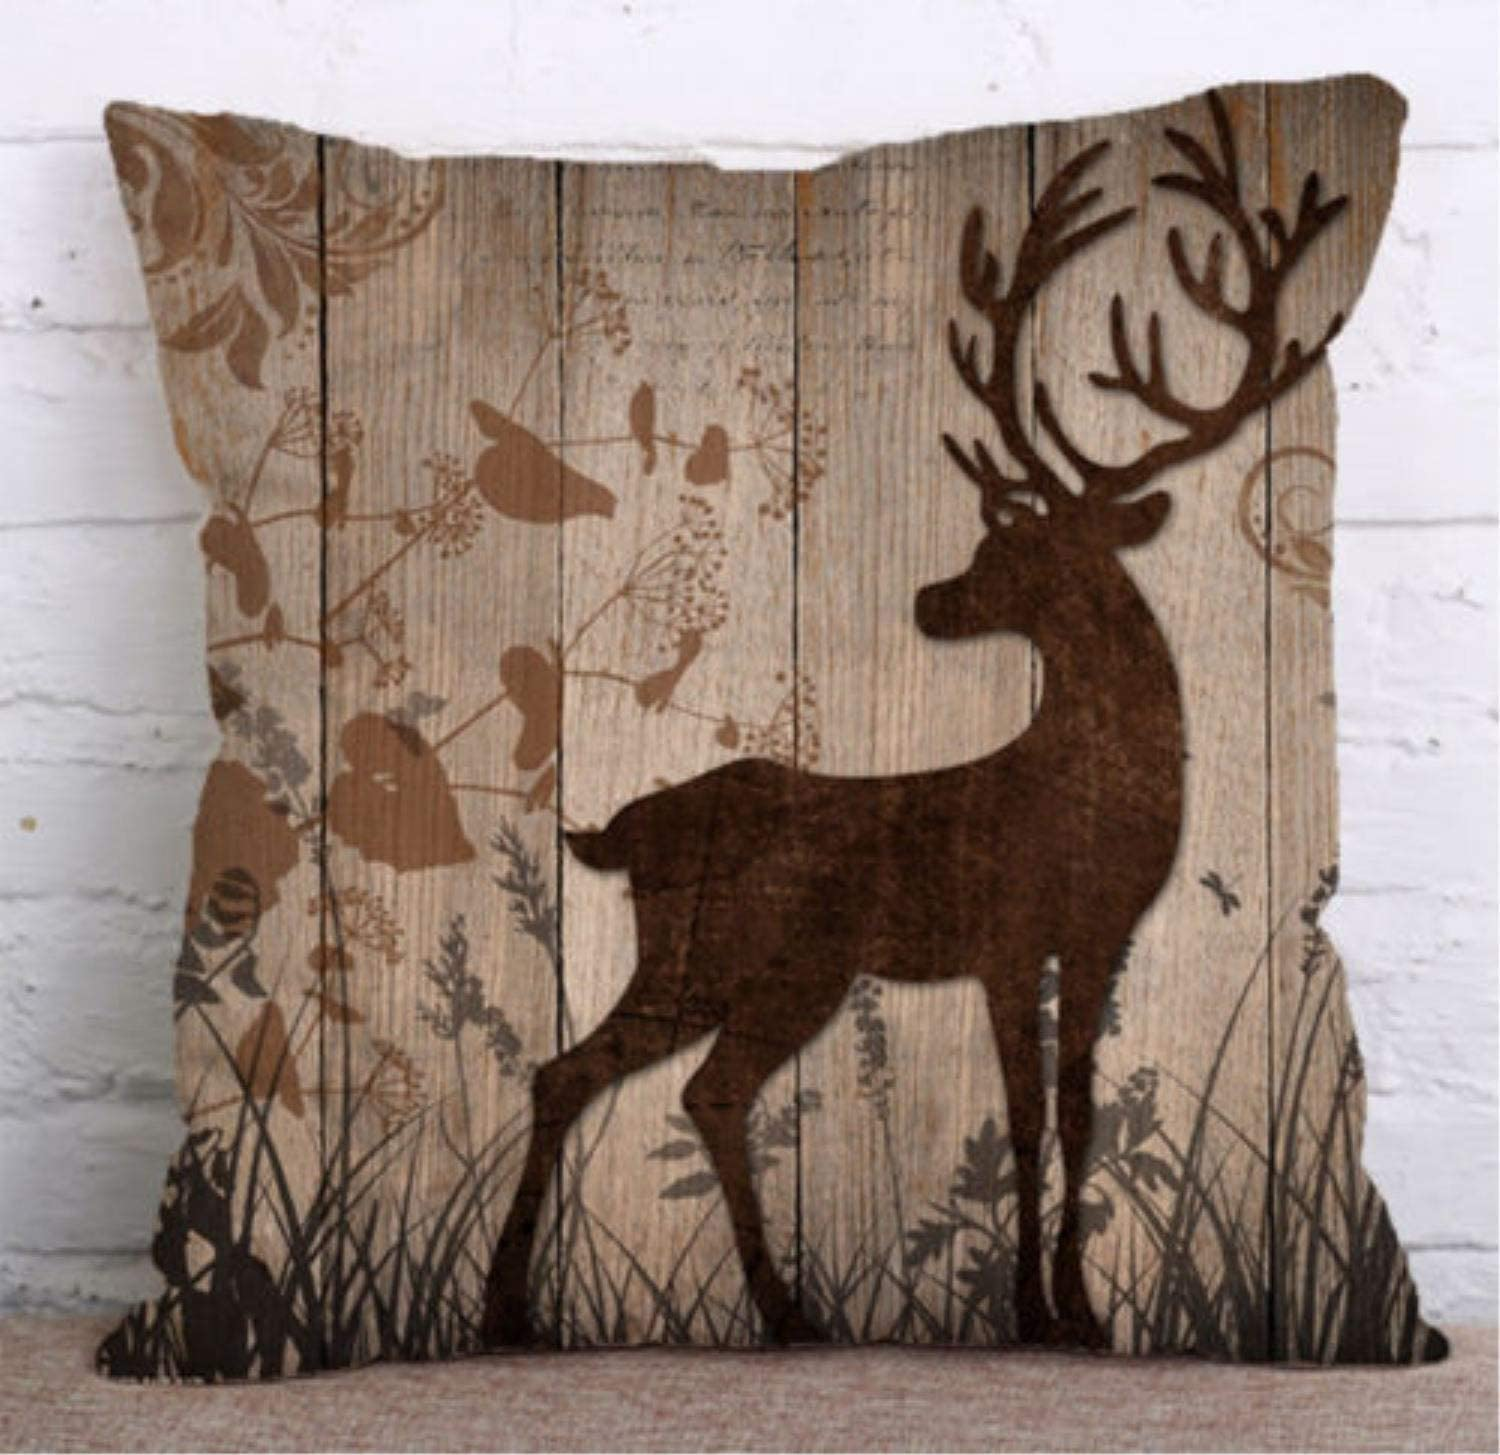 Amazon Com Dkisee Beautiful Brown Deer On Tan Colored Decorative Throw Pillow Cover Deer Hunter S Pillow Cotton Linen Pillowcase Cushion Cover For Sofa Bed Couch 16x16 Inch Home Kitchen